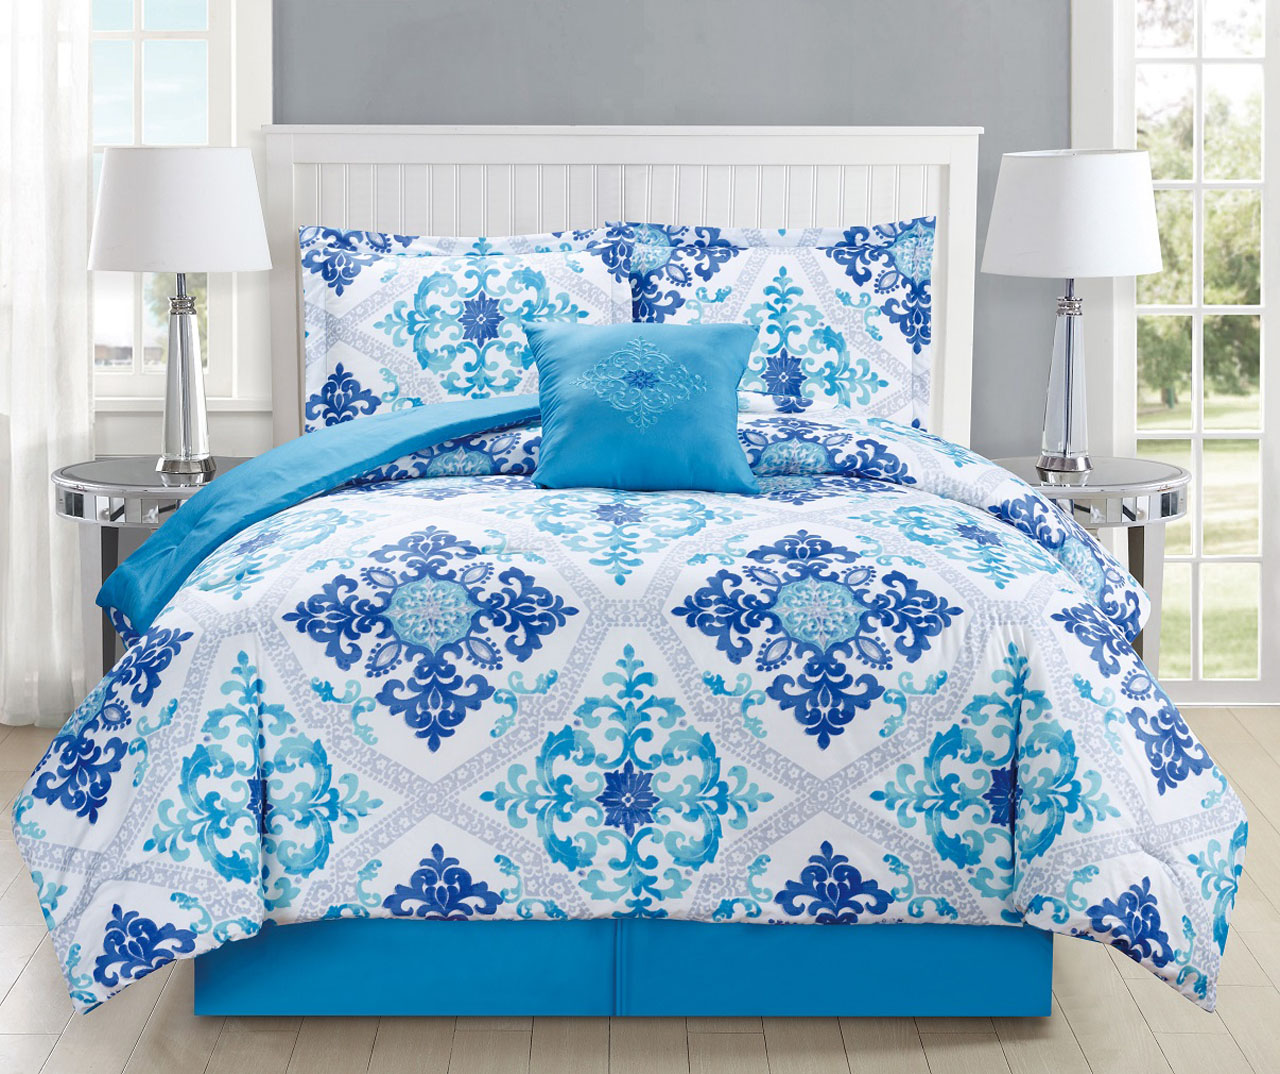 with navy appealing styles set comforter sets king xfile uncategorized quilts bedroom of blue and white bedding trends